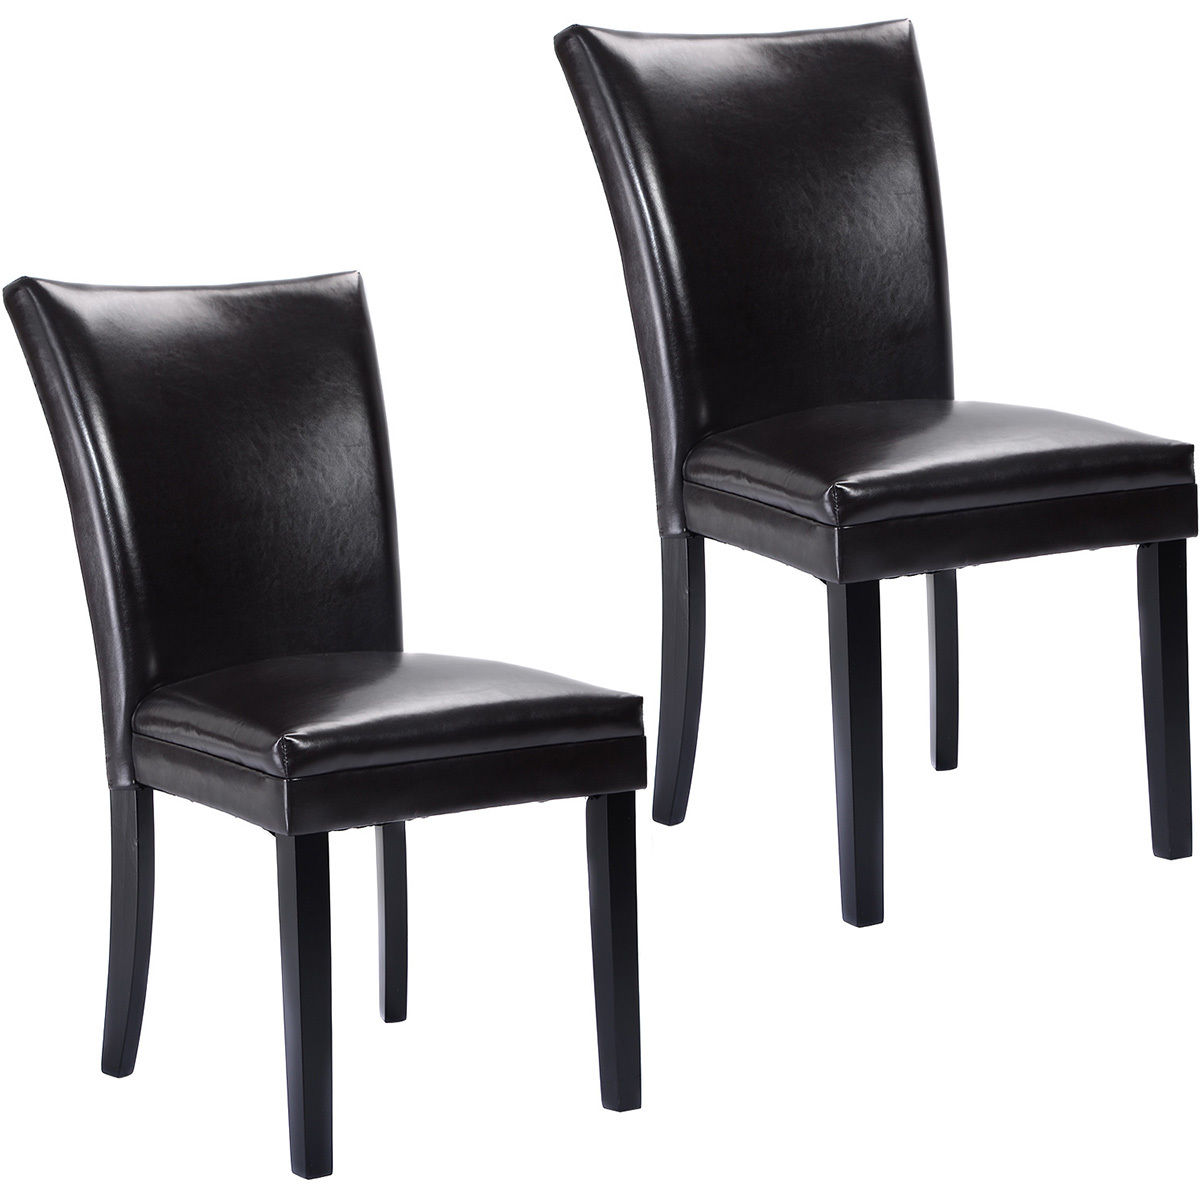 Giantex Set of 2 Elegant Design PU Leather Accent Dining Chairs Modern Home Furniture HW52837BN стоимость